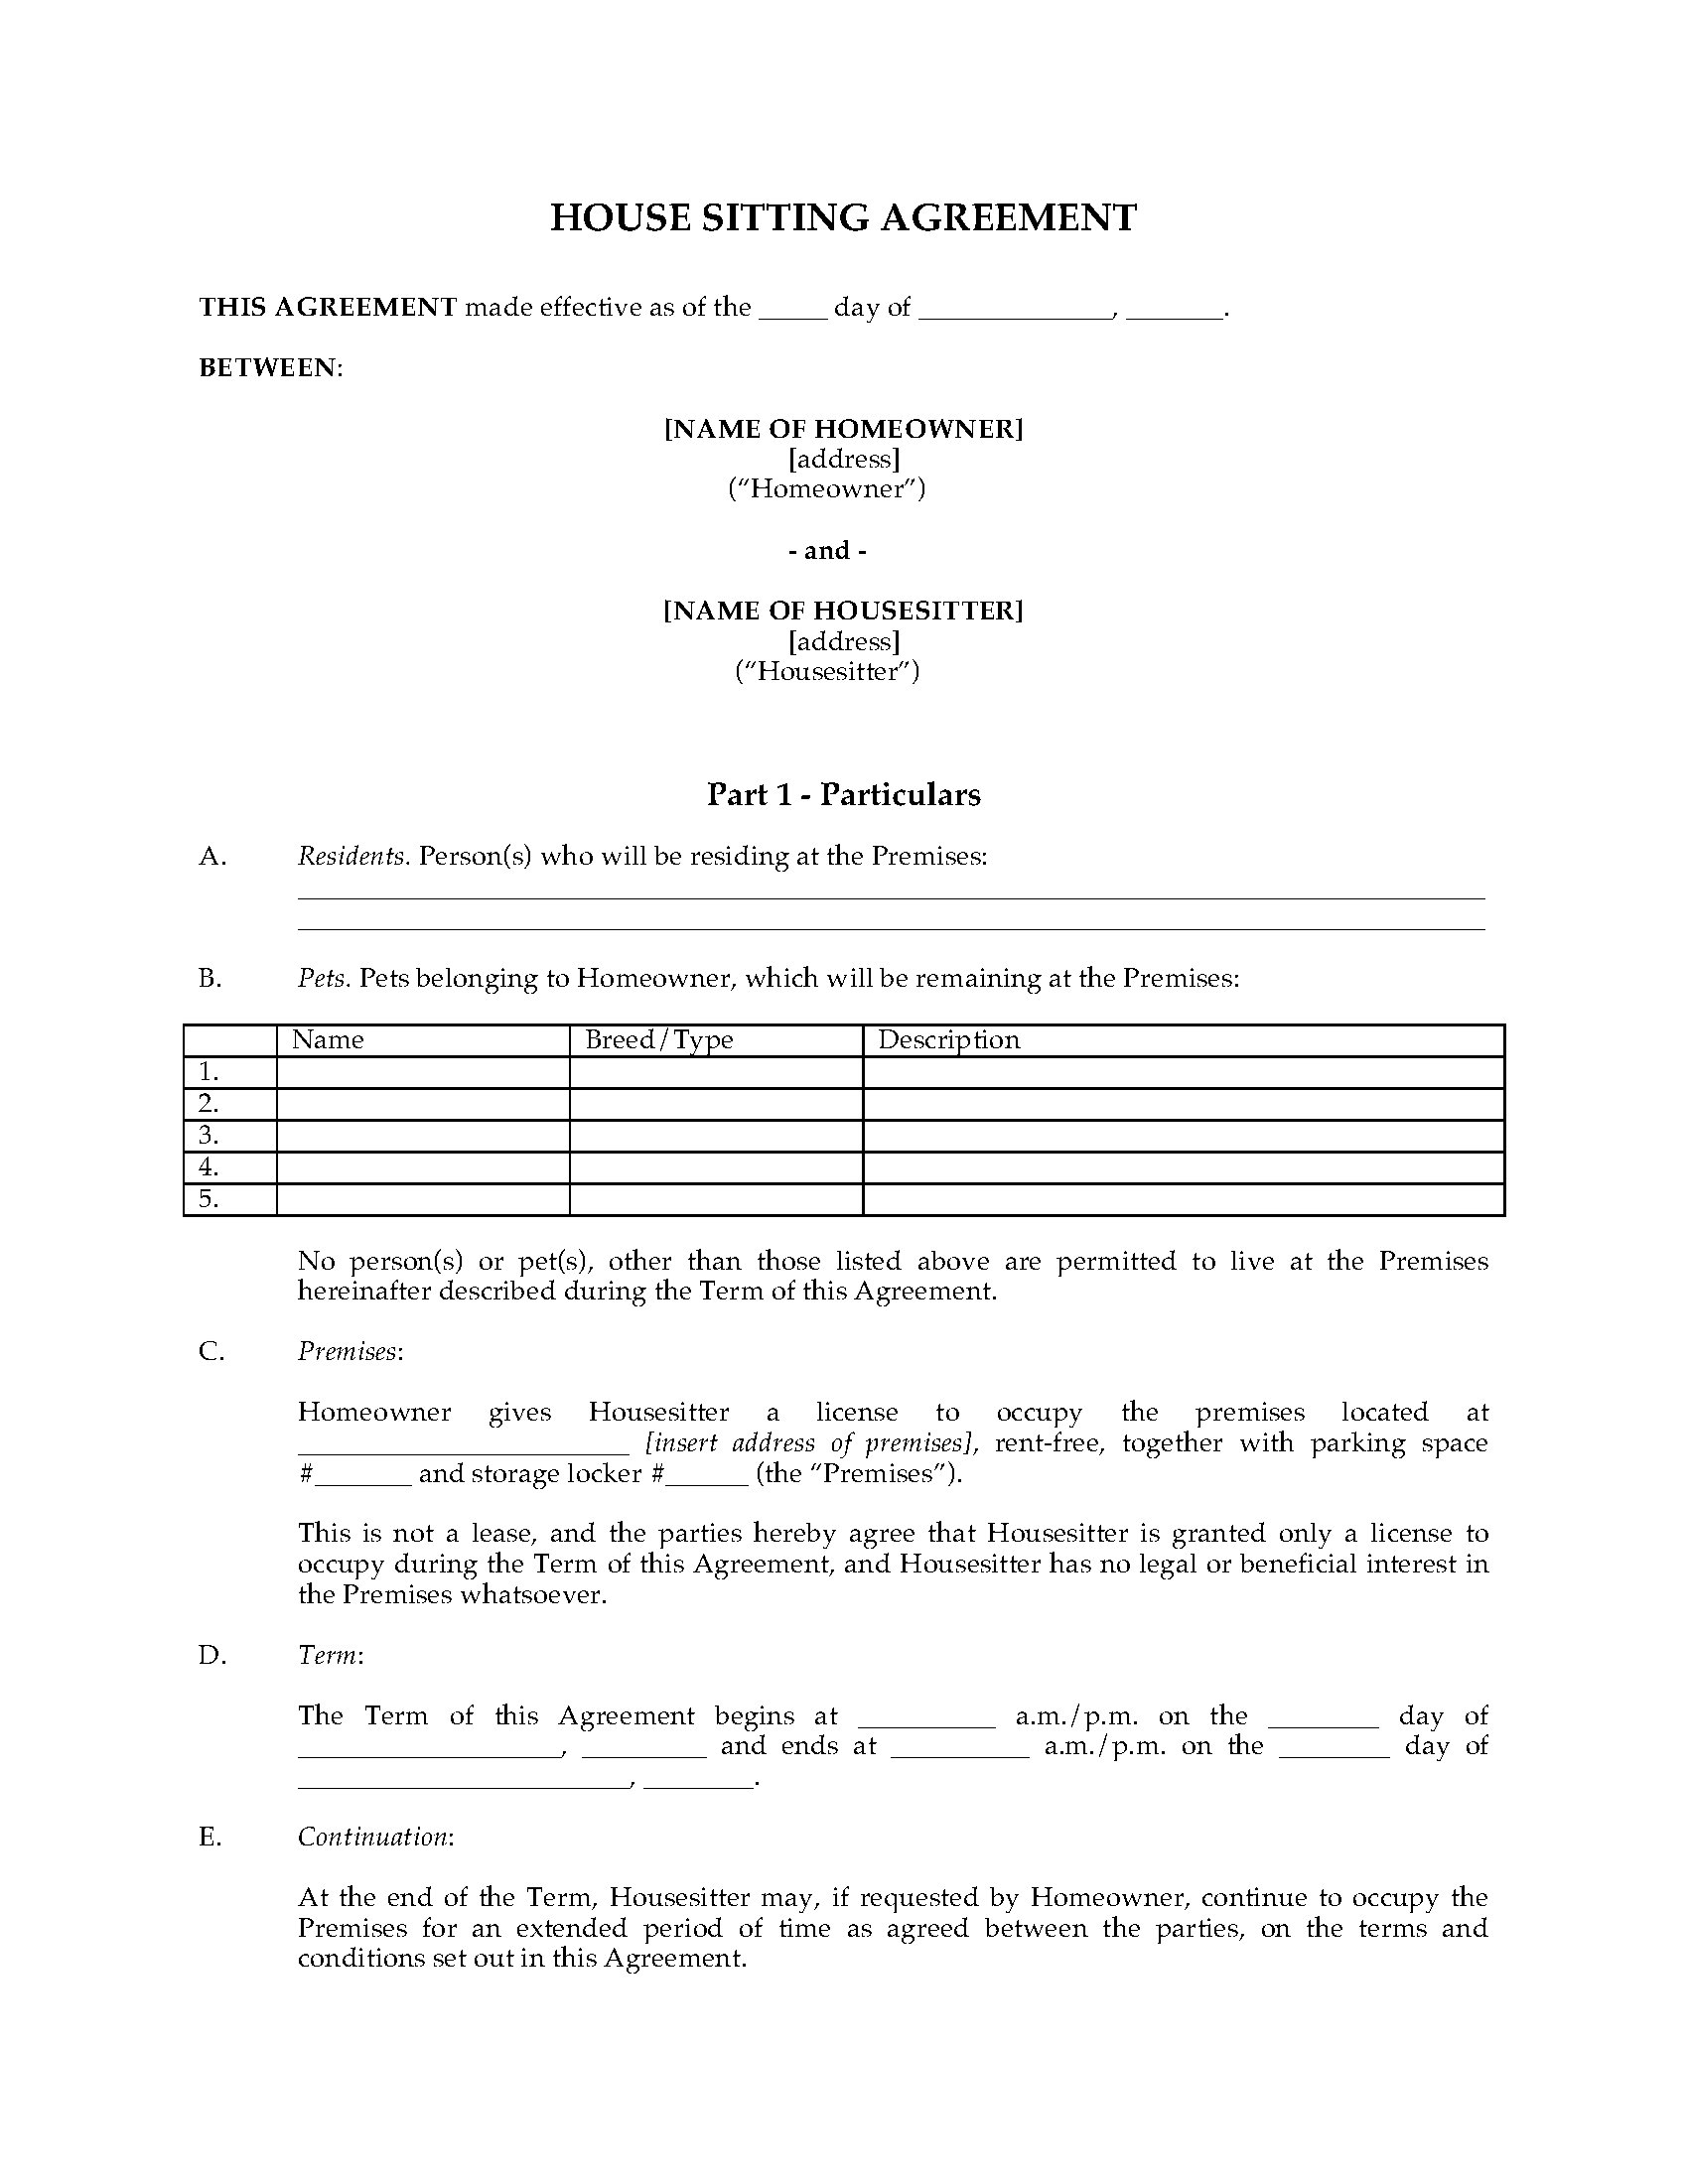 House sitting agreement template legal forms and business picture of house sitting agreement platinumwayz